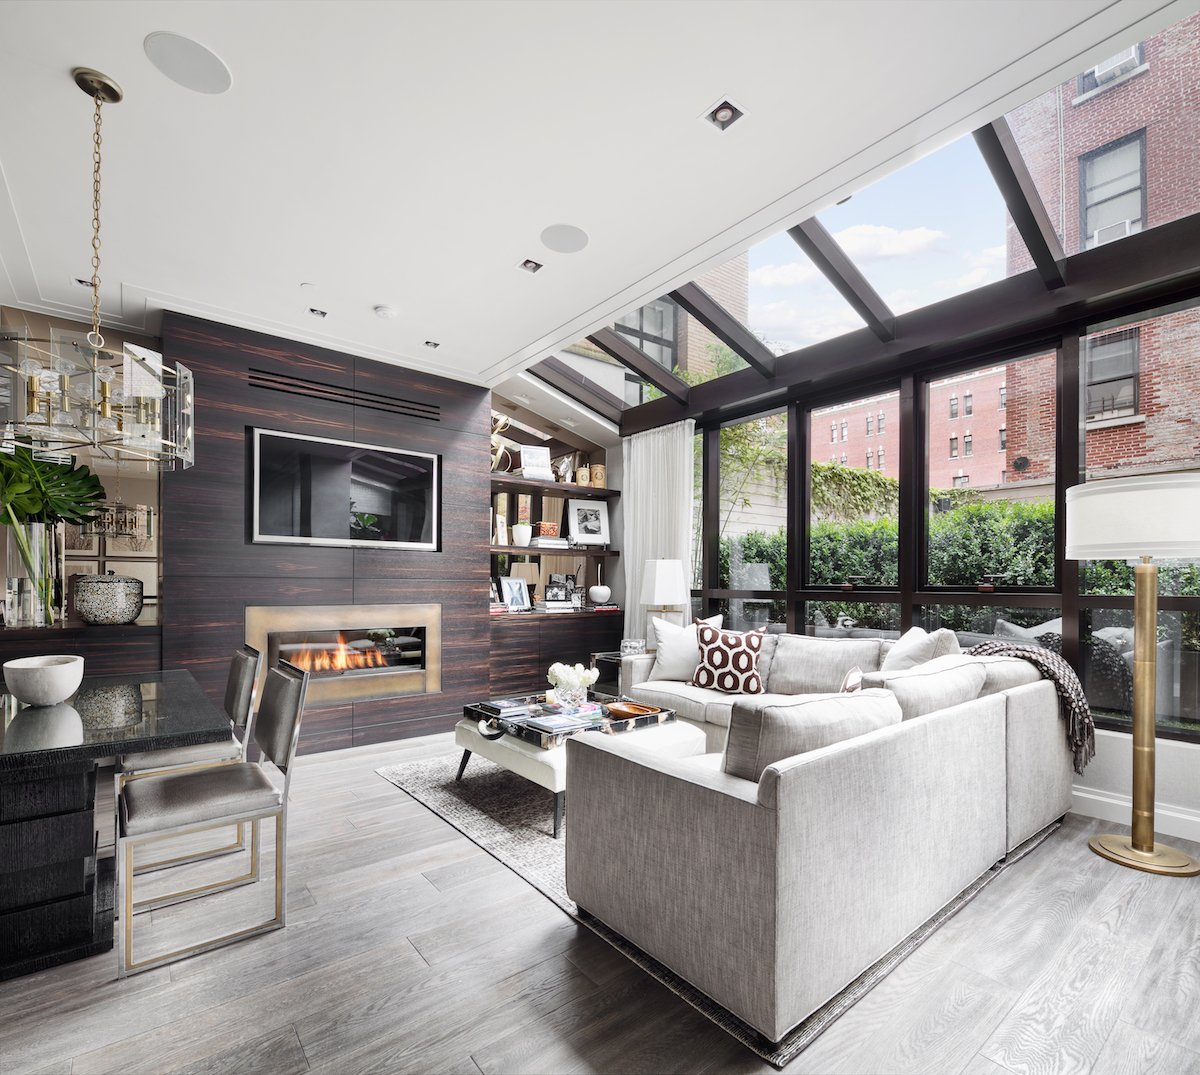 Condo Rentals Nyc: For $12M This West Village Townhouse/Condo Has It All